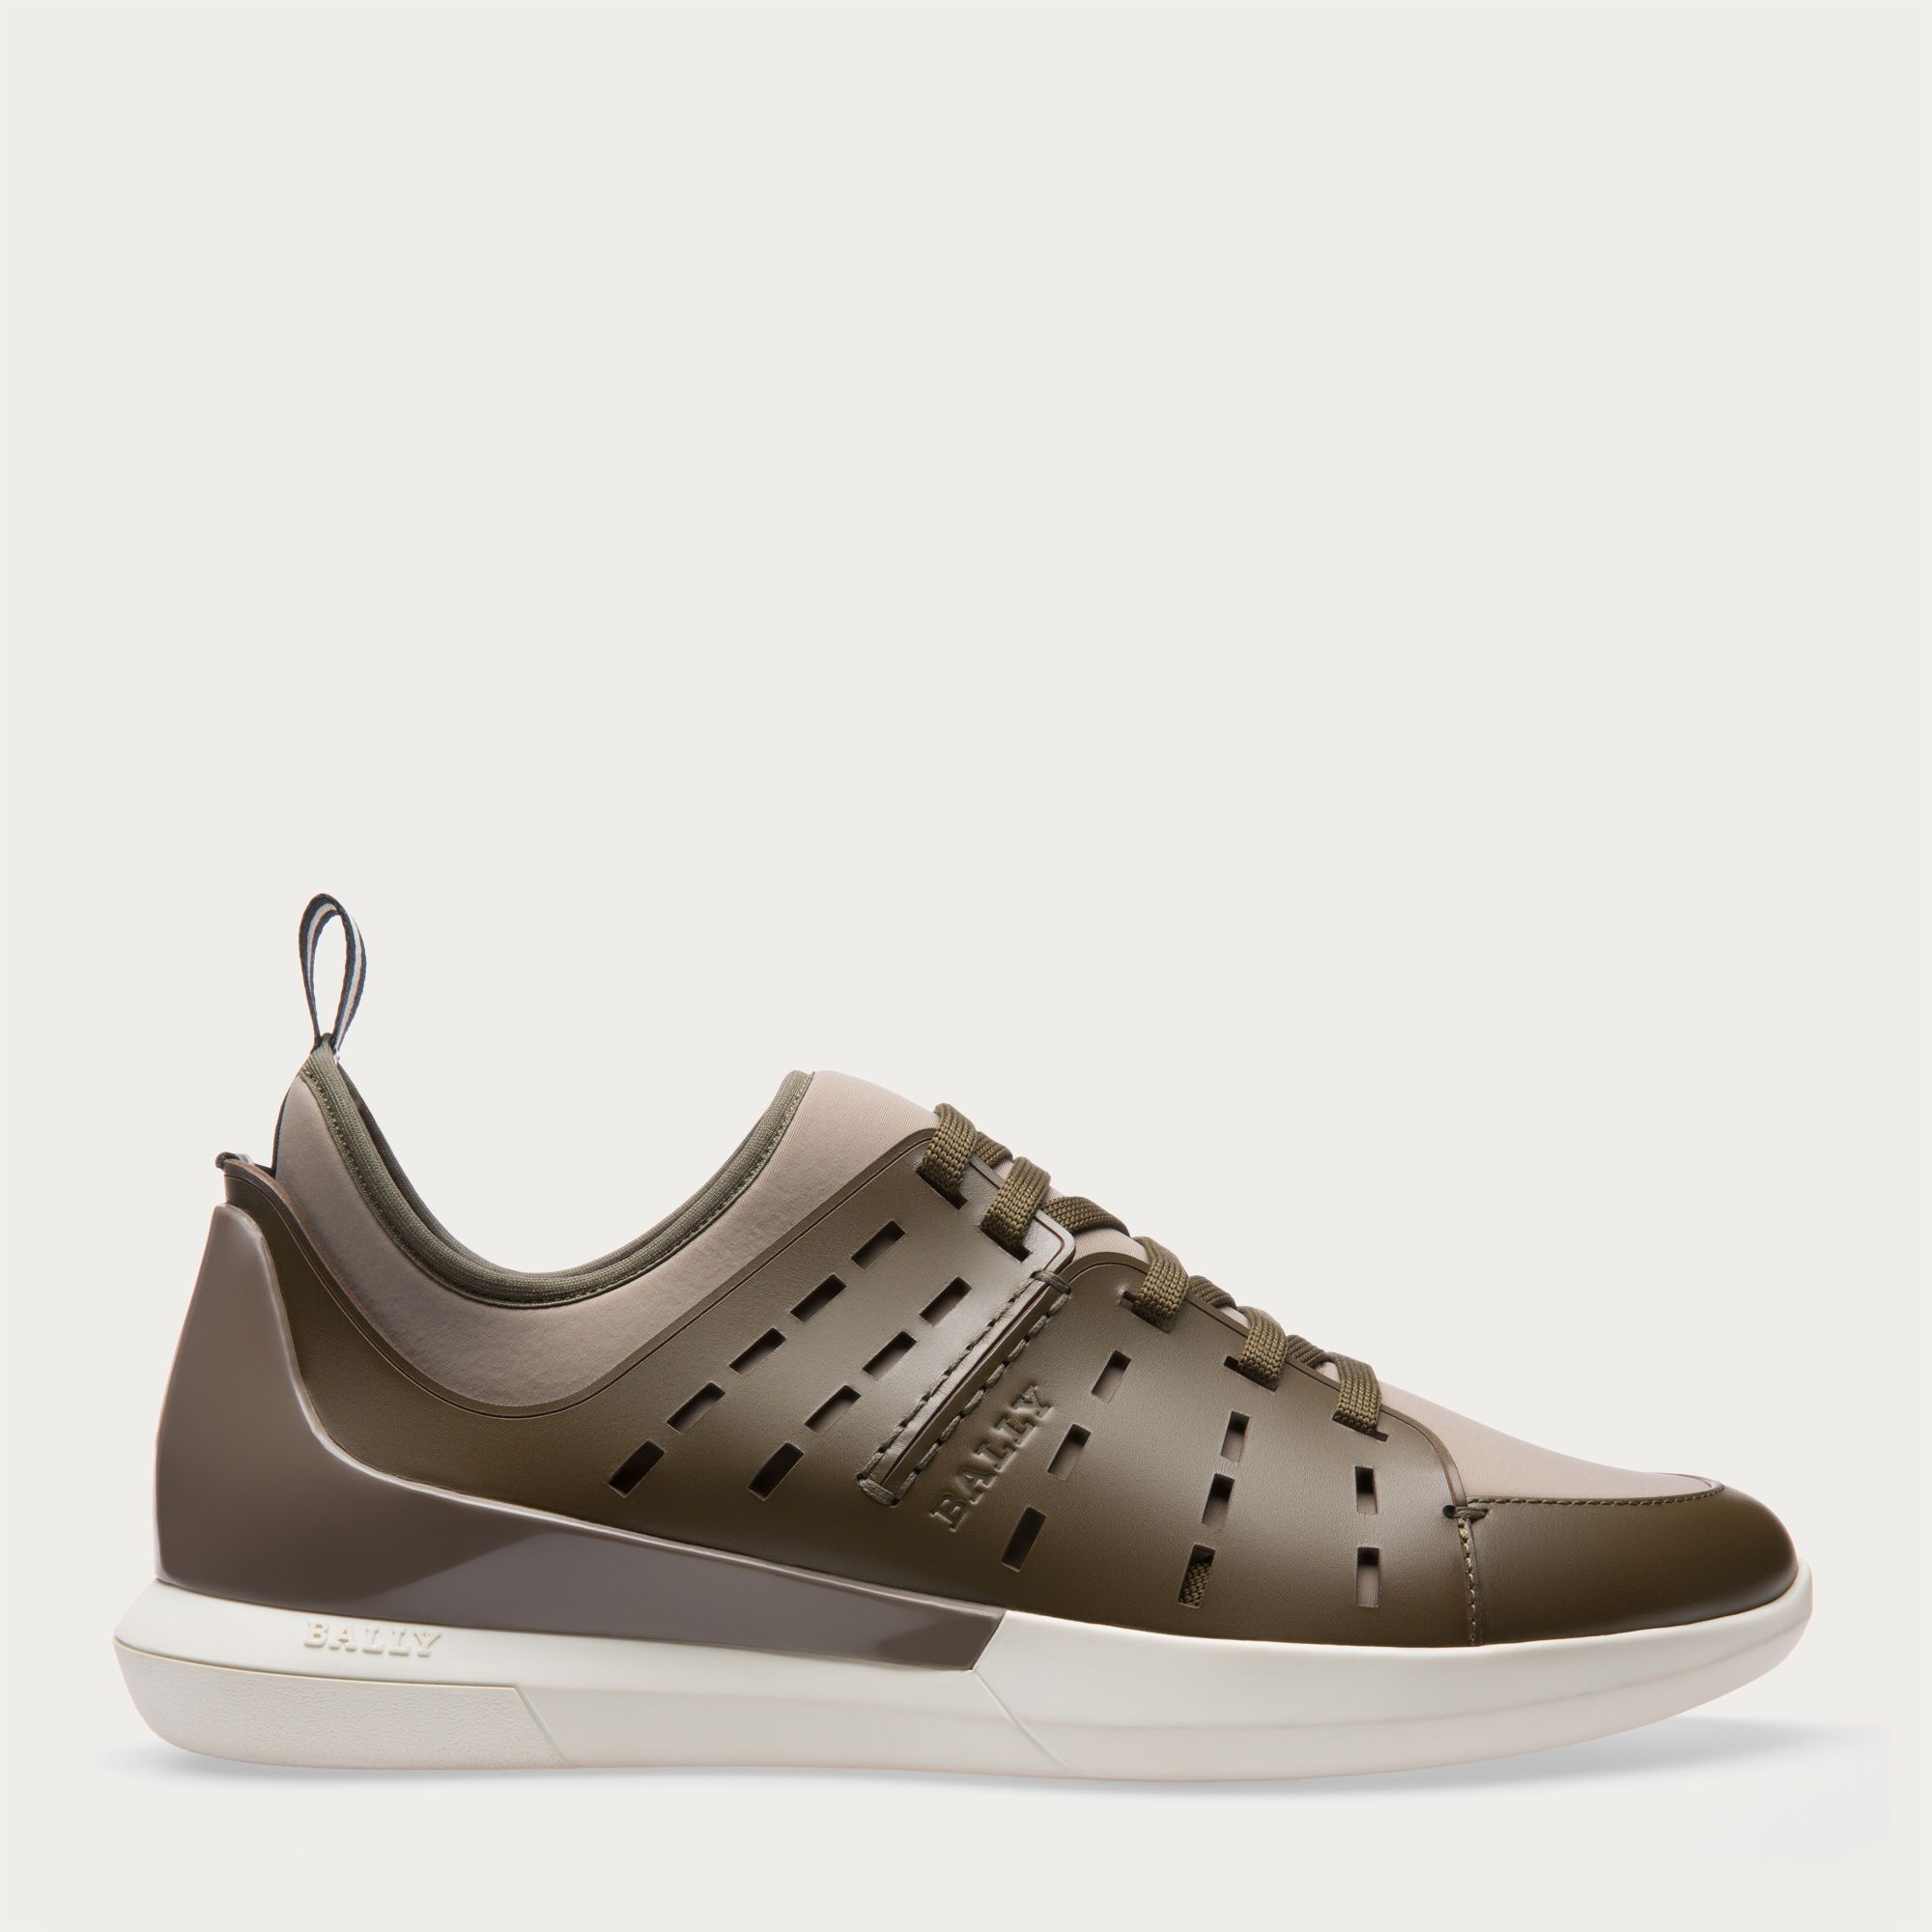 3ac2e01f0db681 AVARY - 10709 DK EVERGREEN 17 CALF Sneakers | SNEAKERS SS17 in 2019 ...